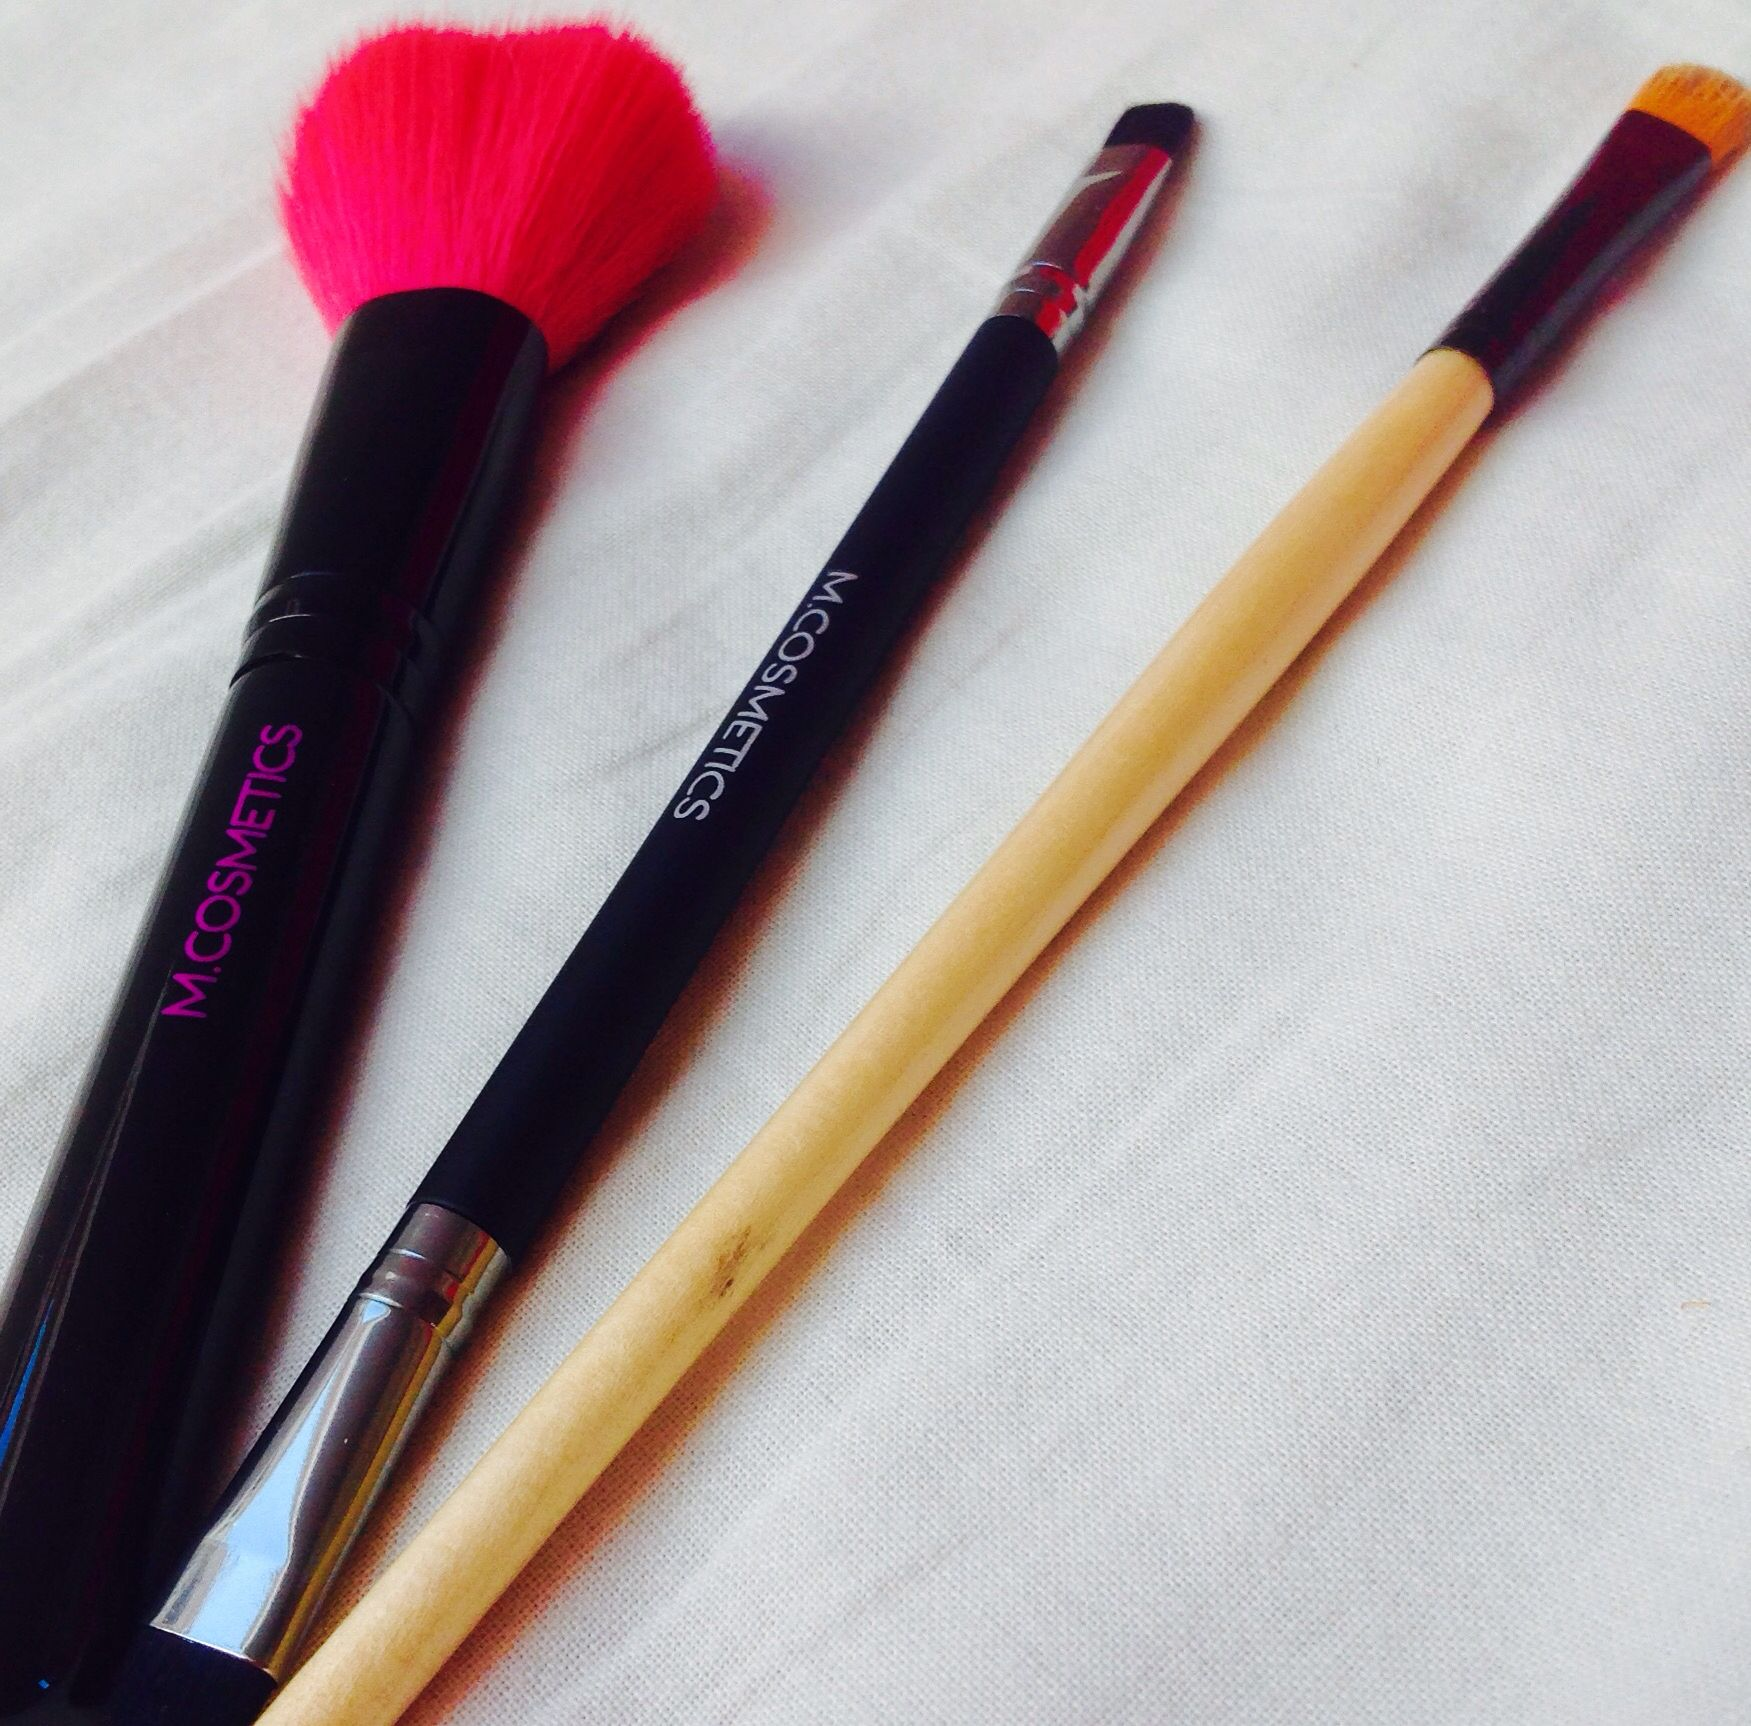 My lovely makeup brushes❤️